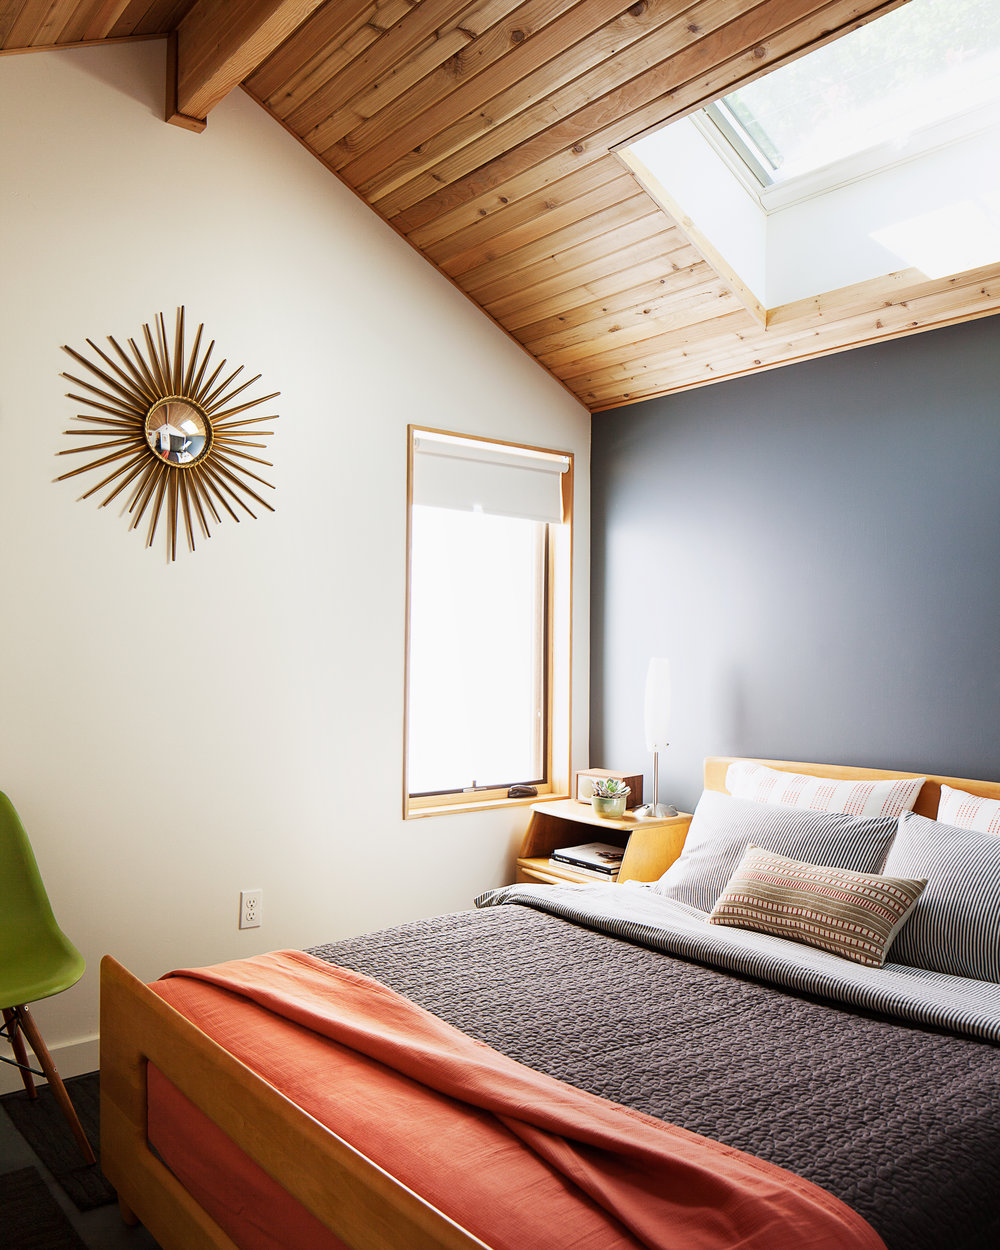 PDX Blog — PDX Vacation Guesthouses